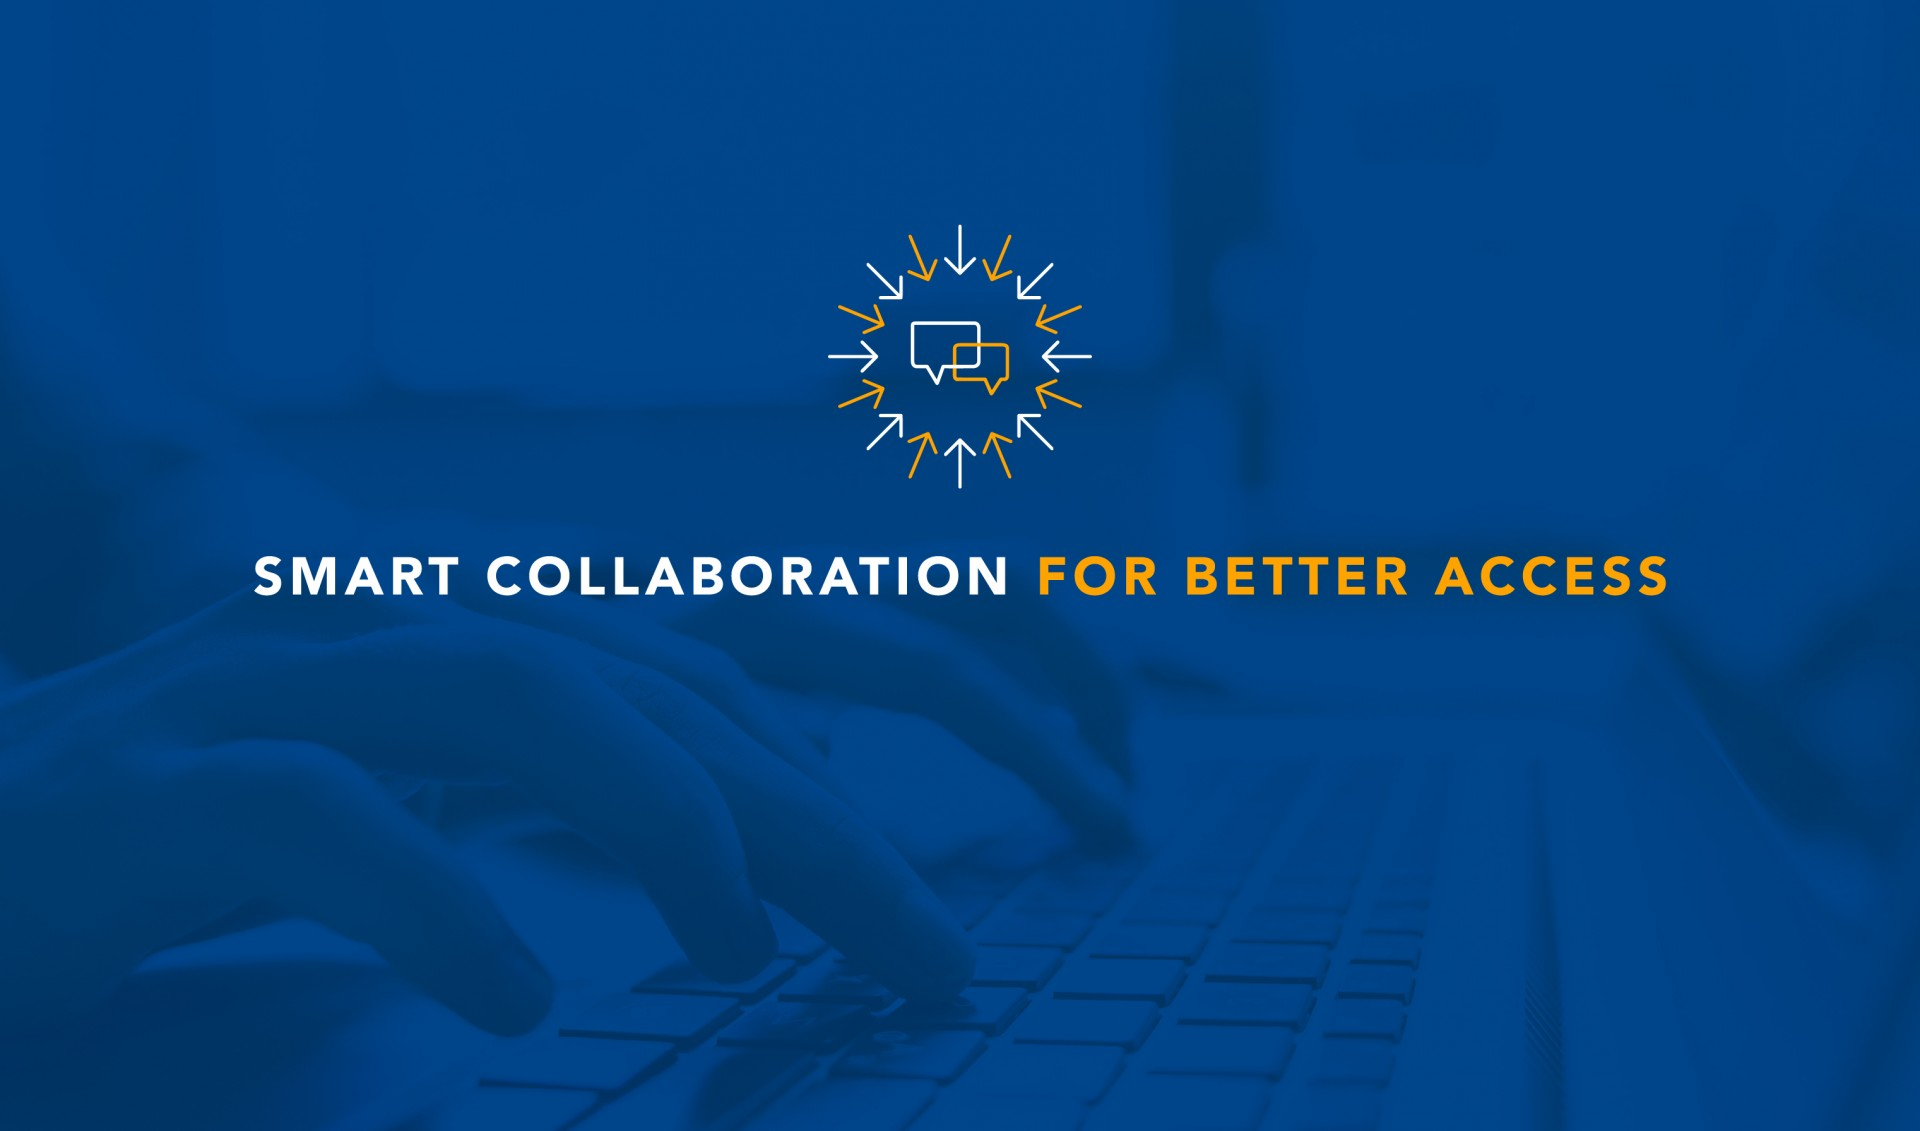 Smart Collaboration for Better Access